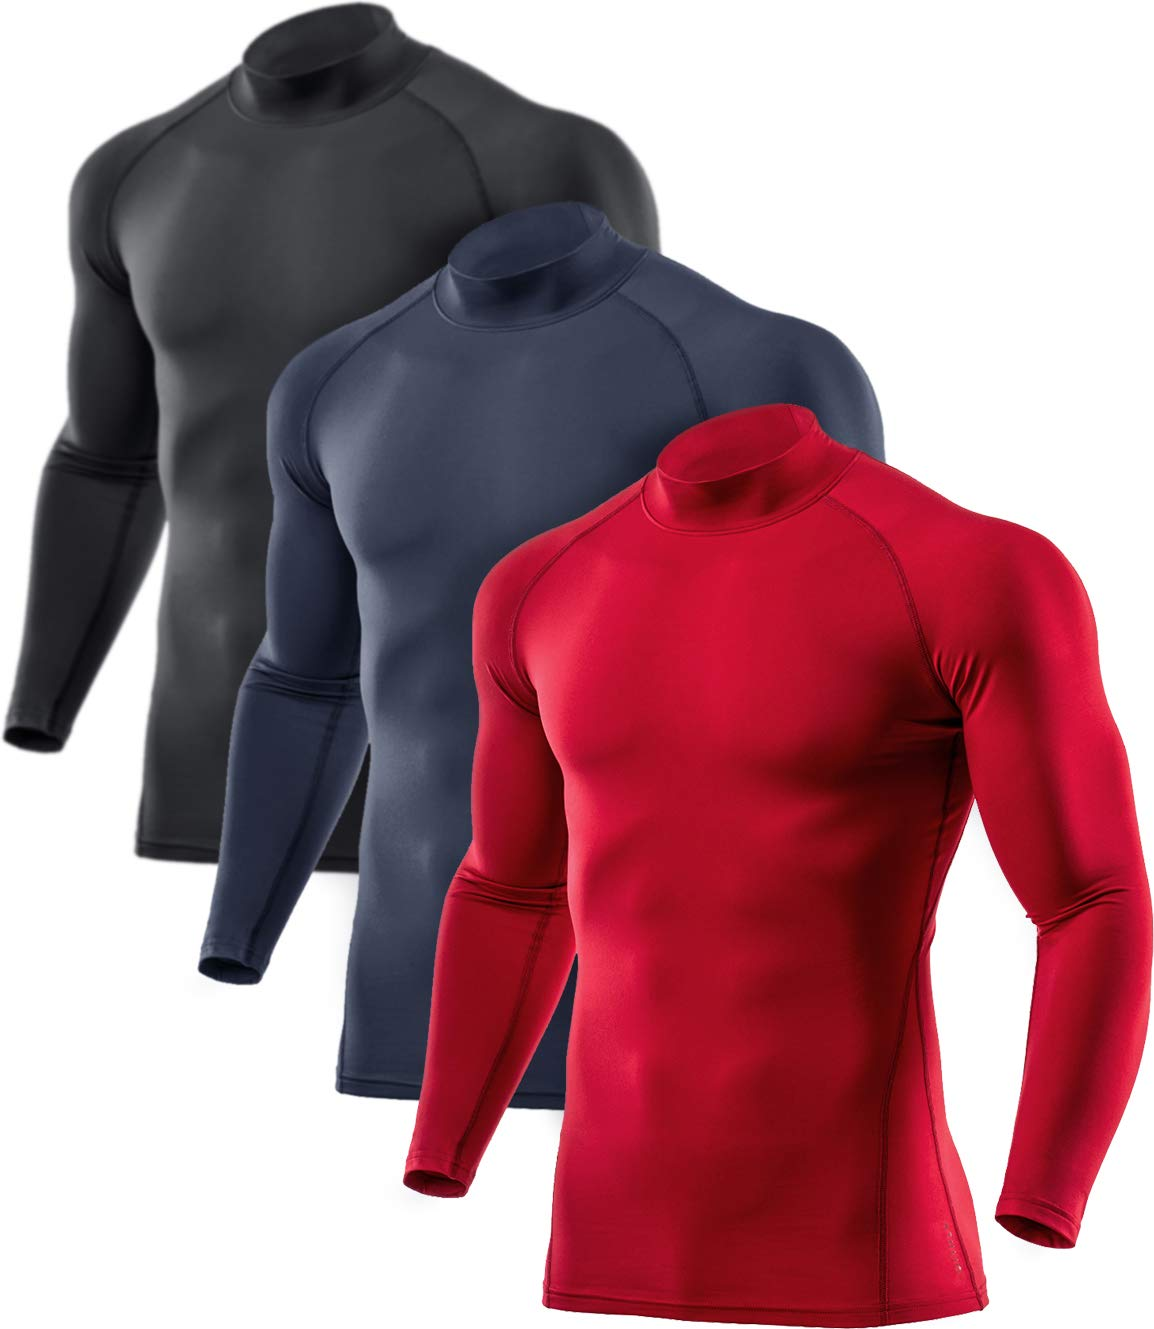 ATHLIO Men's Thermal Wintergear Compression Baselayer Mock Long Sleeve Shirt, 3pack(lyt23) - Black/Charcoal/Red, Medium by ATHLIO